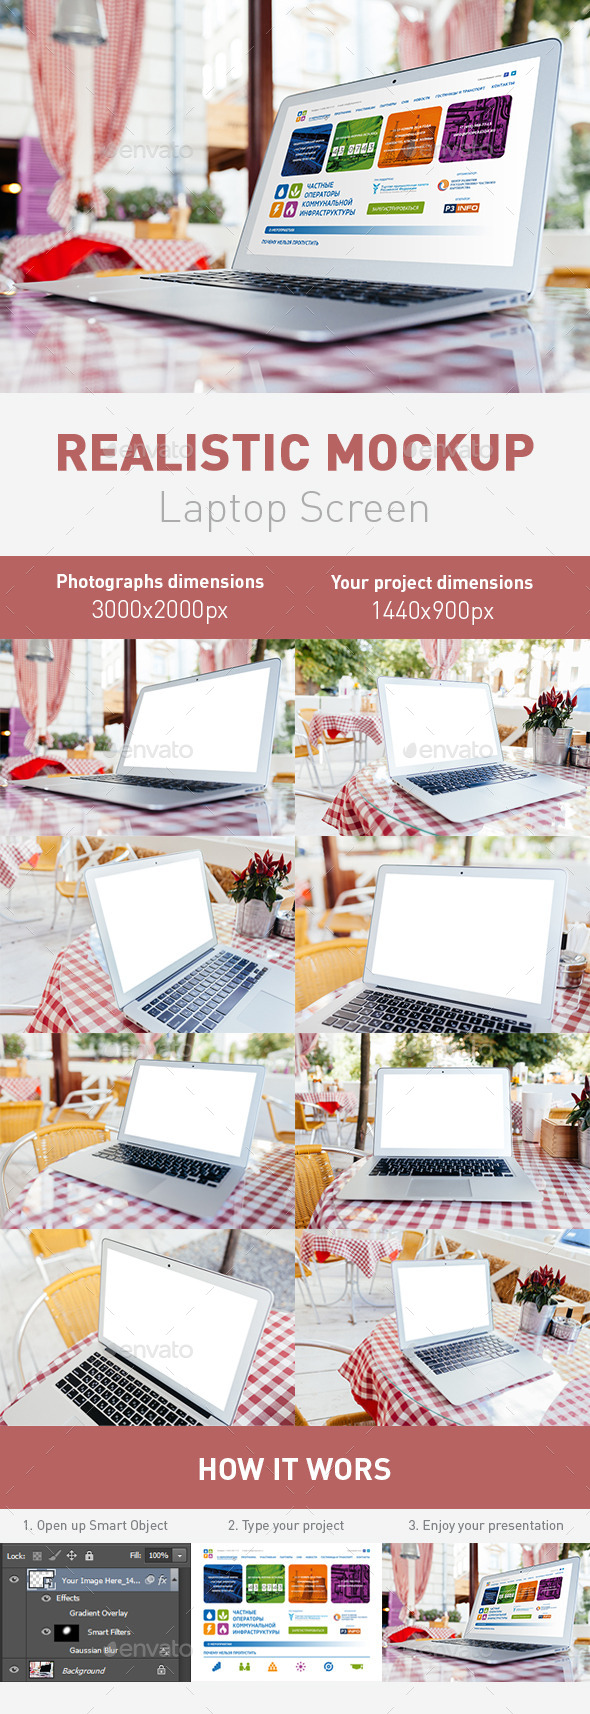 Realistic Laptop Screen Mockup 8 PSD Files